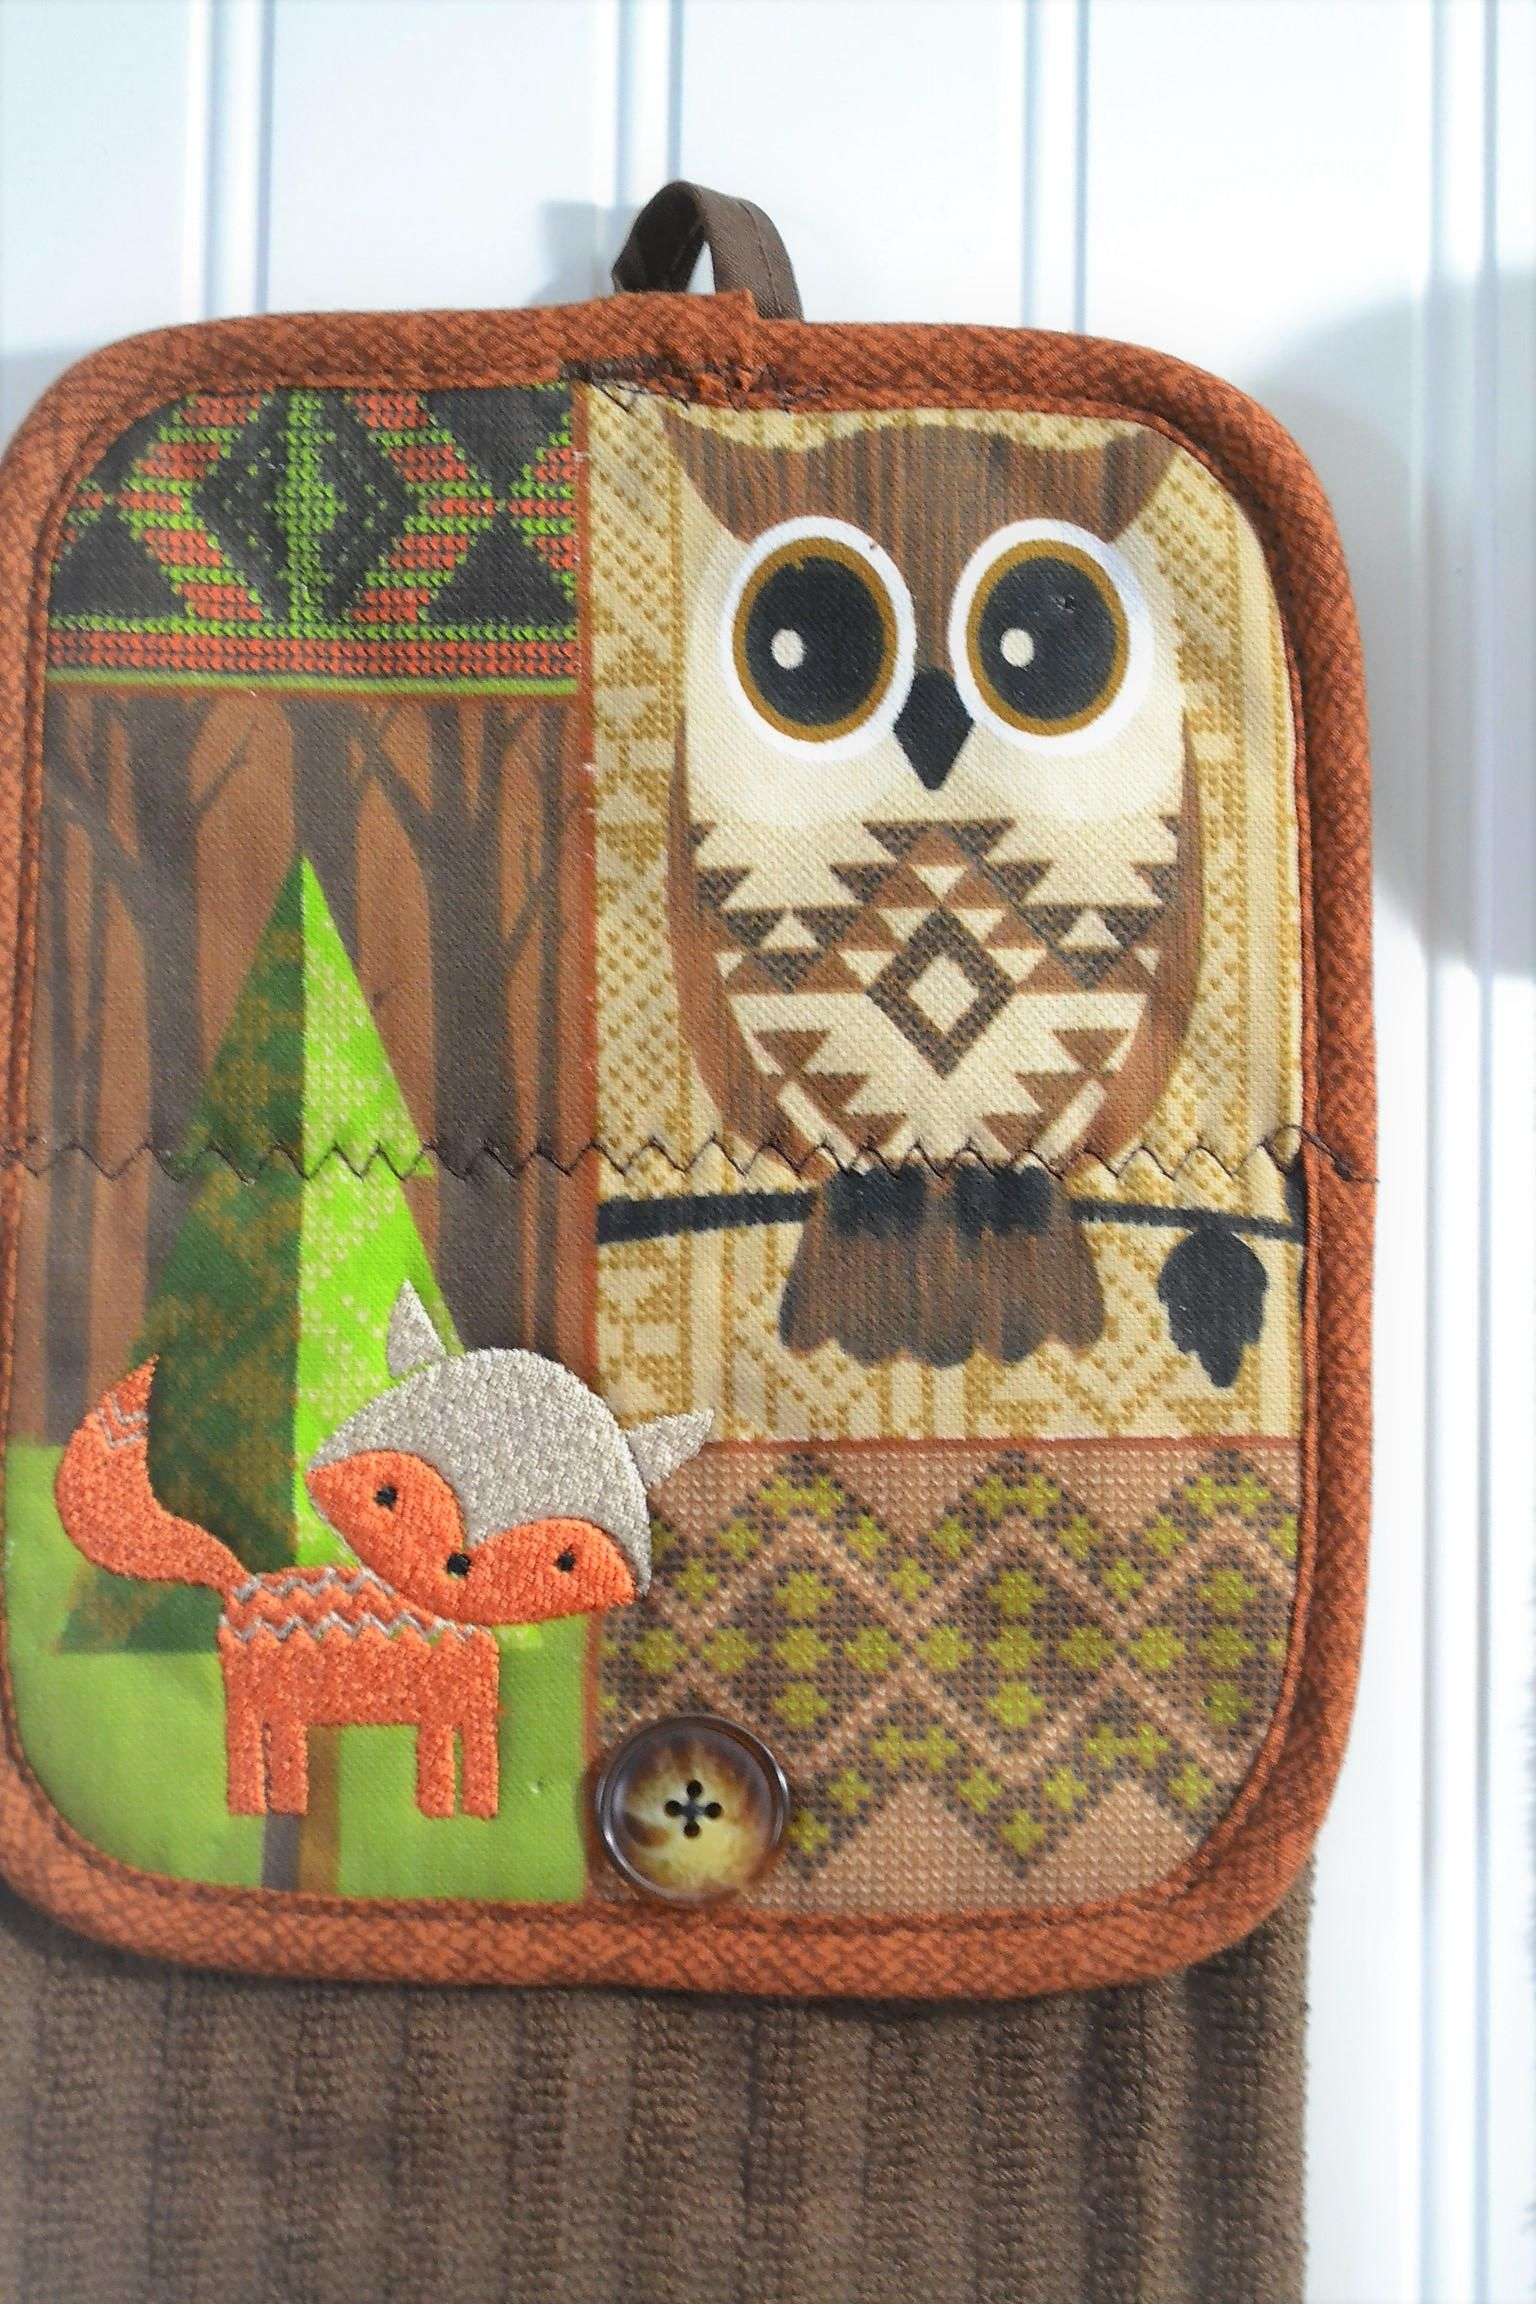 Kitchen towels oven mitt owl fox decor embroidered quilted decoration bridal shower gifts kitchen ideas forrest woodlandunique style